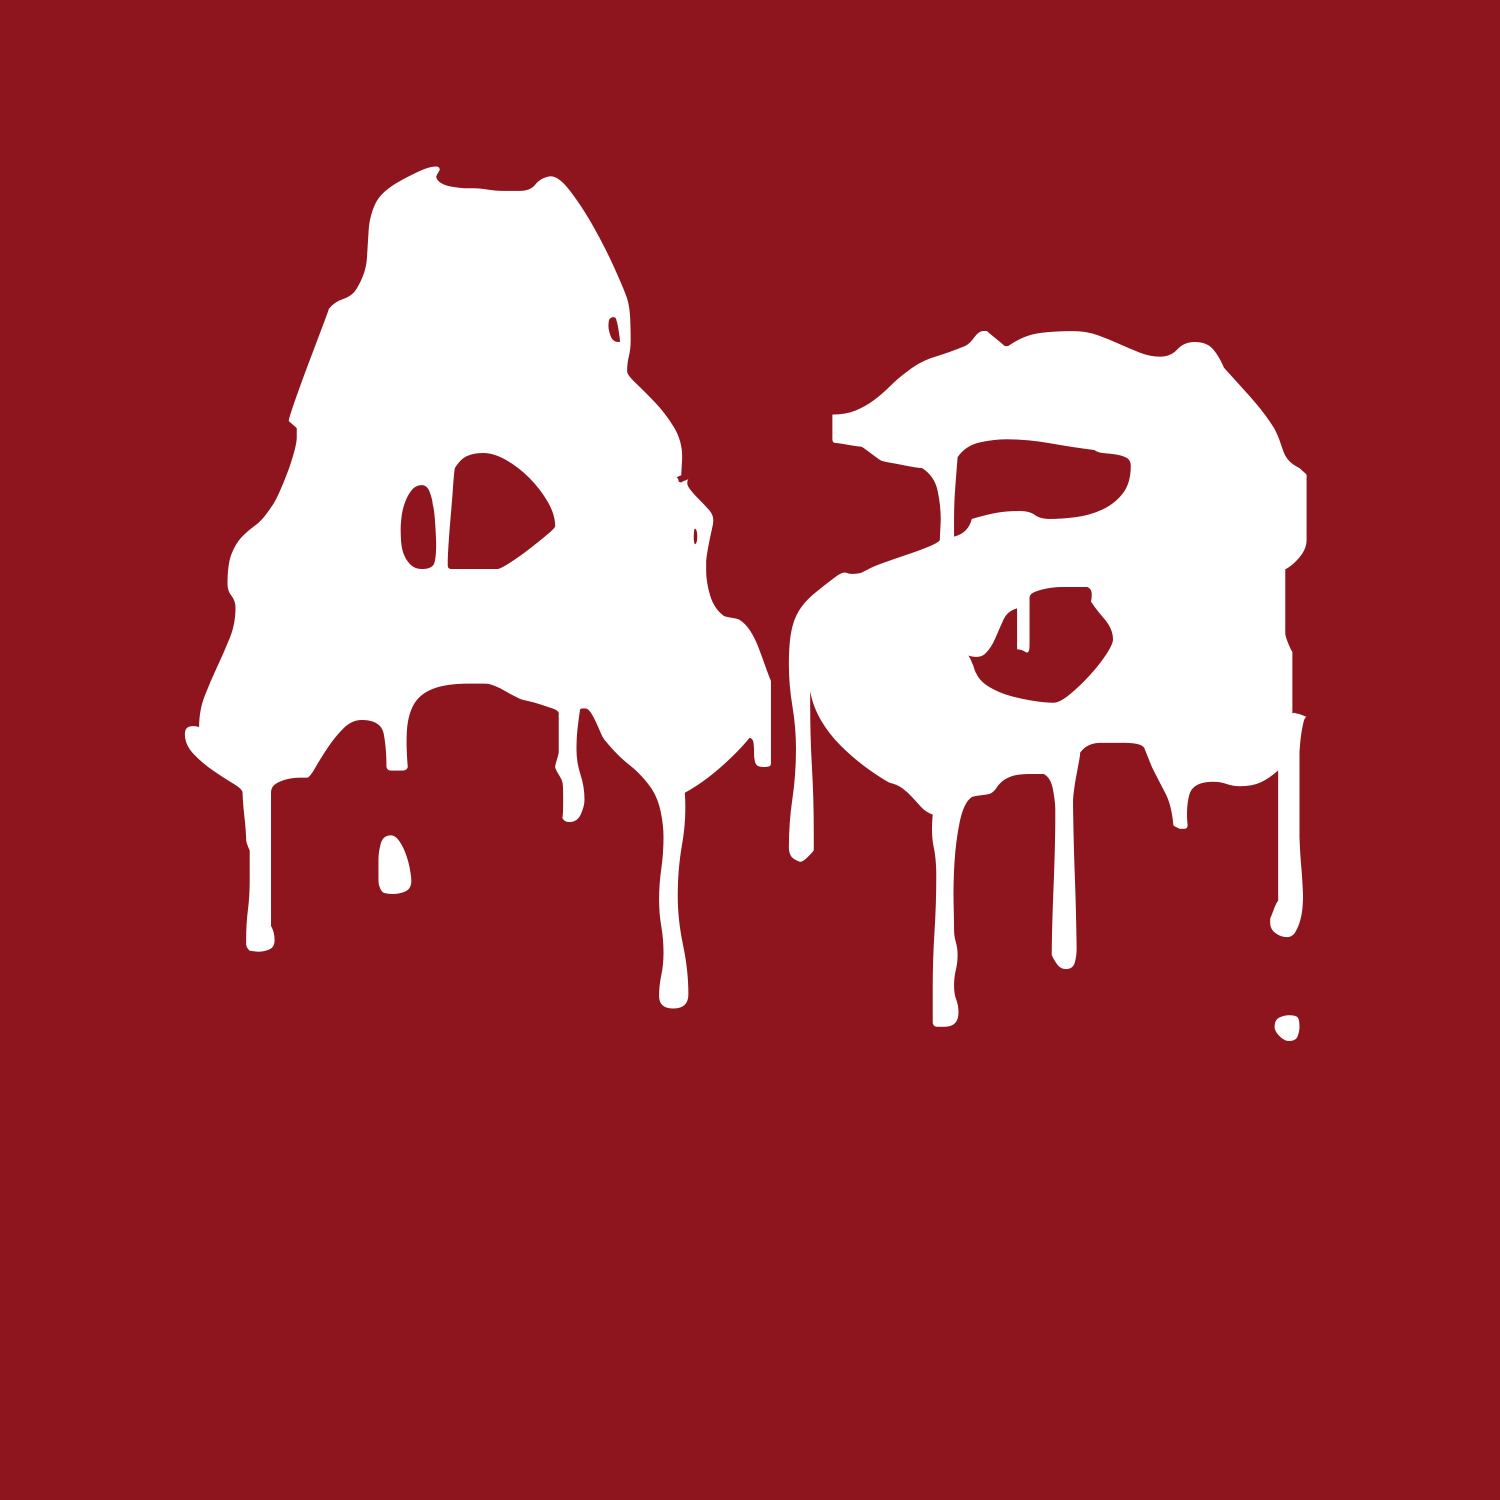 Dripping Letters Font